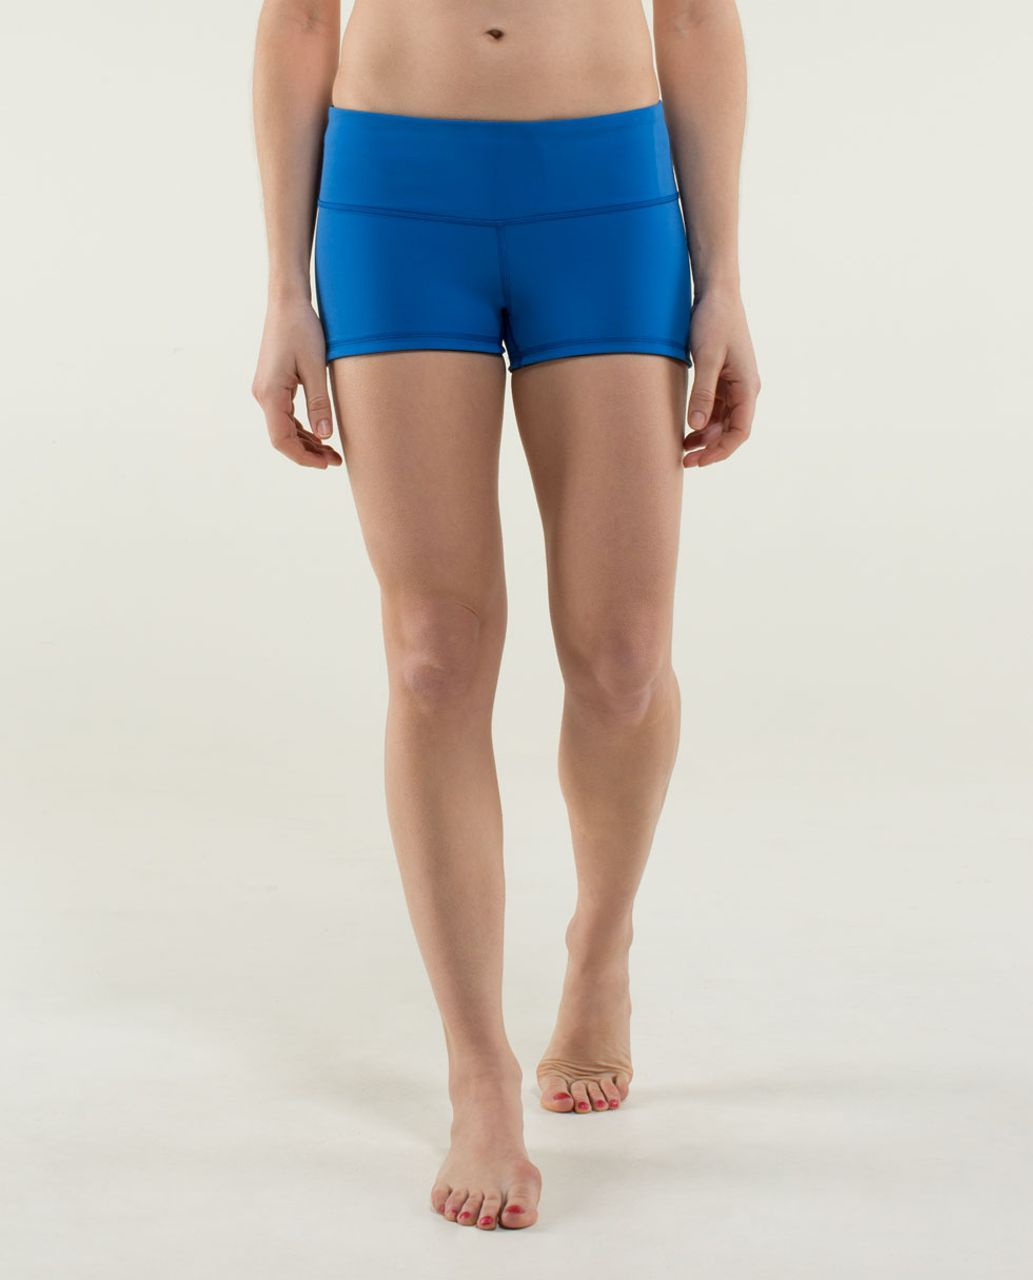 Lululemon Boogie Short - Black / Baroque Blue